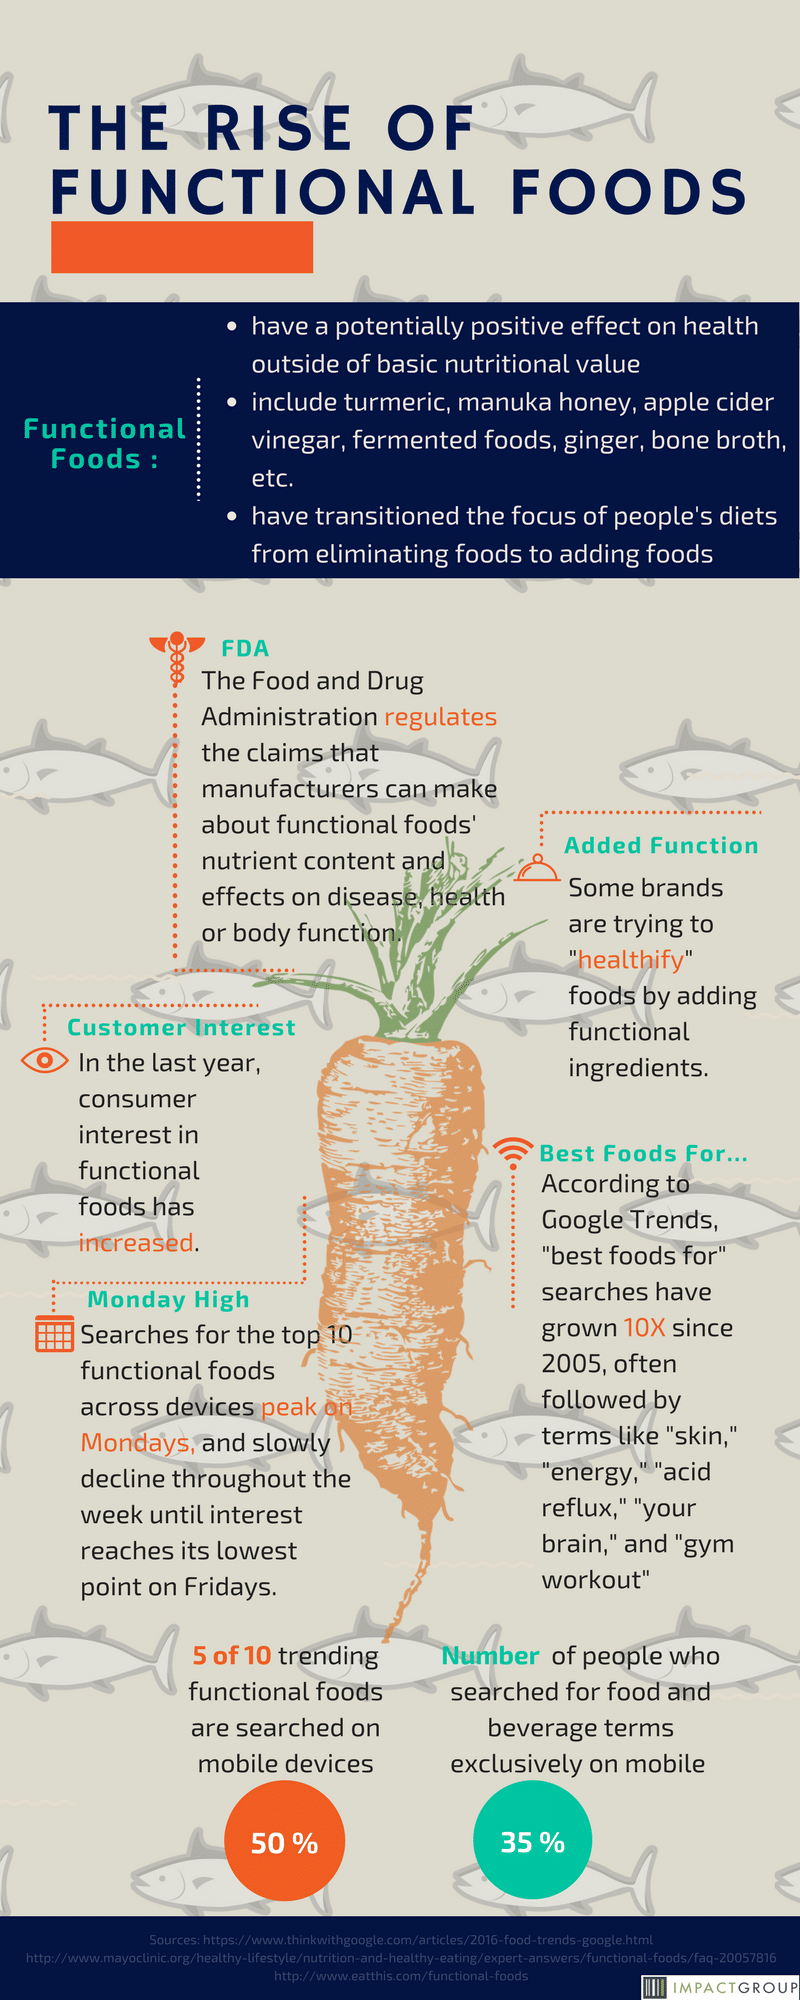 The Rise of Functional Foods - Impact Group